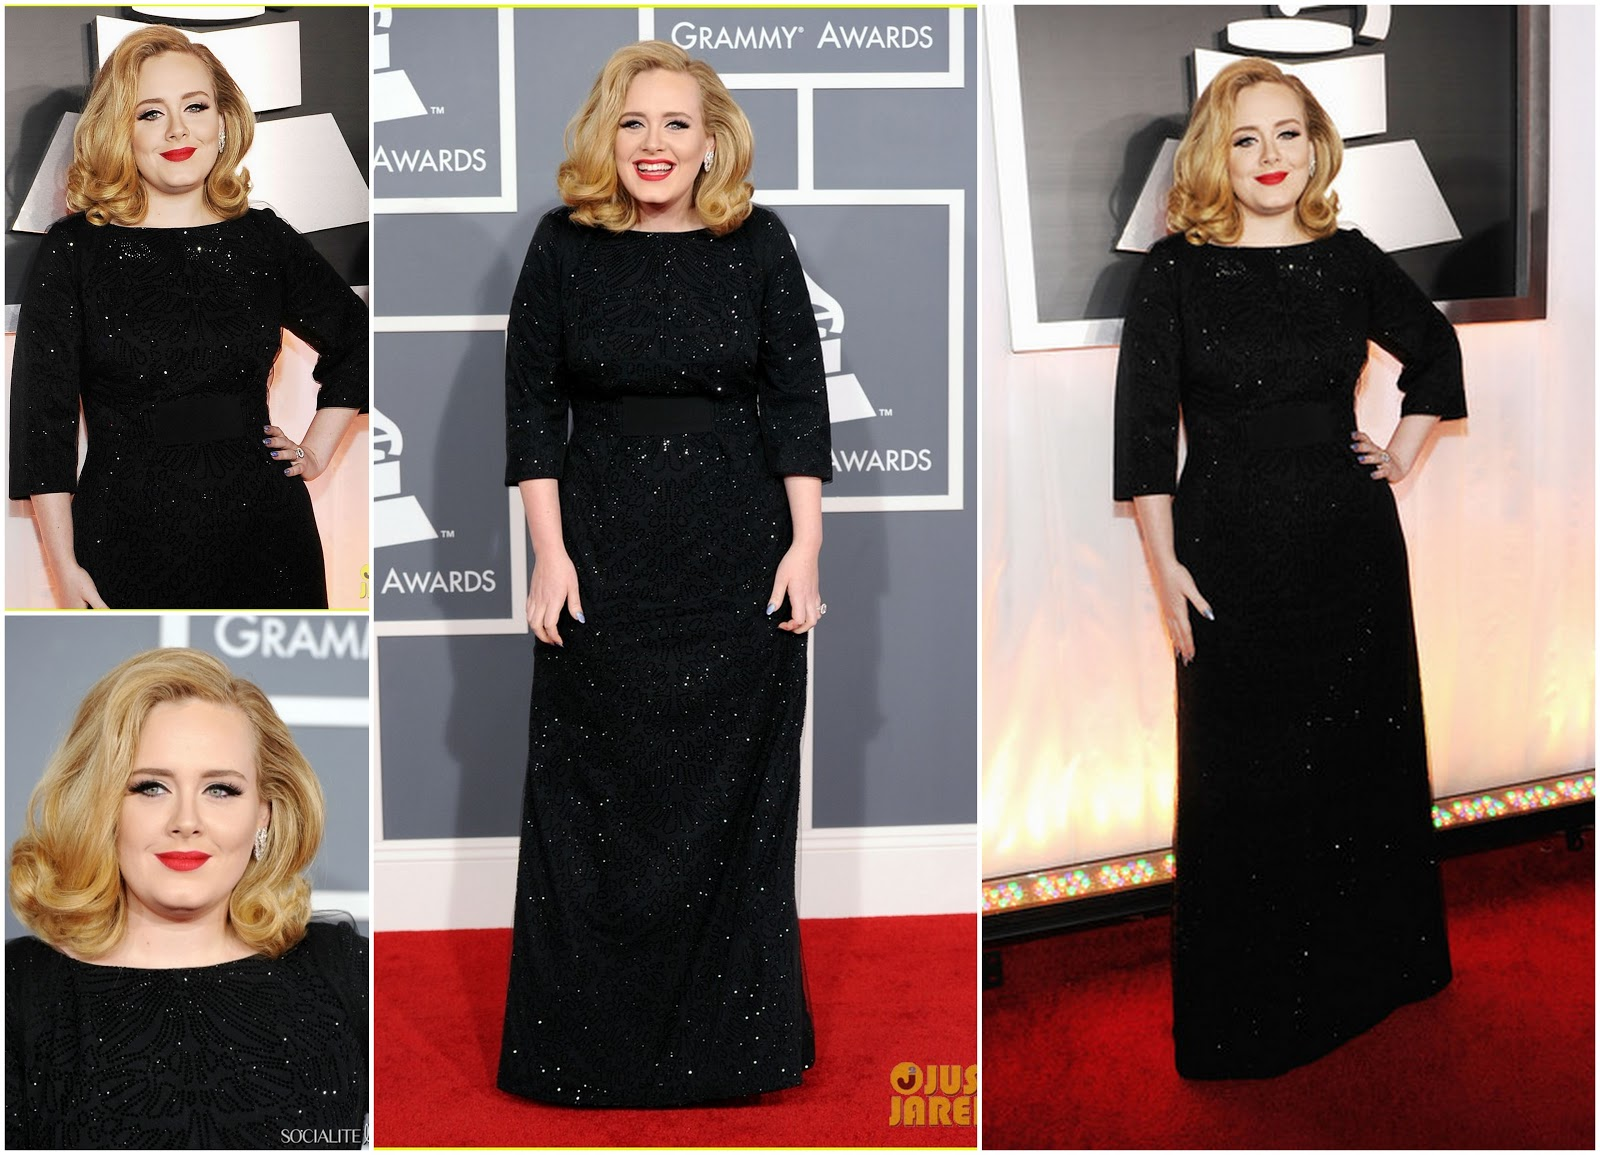 http://4.bp.blogspot.com/-eyvJQygV6_0/TzrCgTLaGWI/AAAAAAAACDU/UP4Uq4dMPVw/s1600/Adele+Look+Red+Carpet.jpg